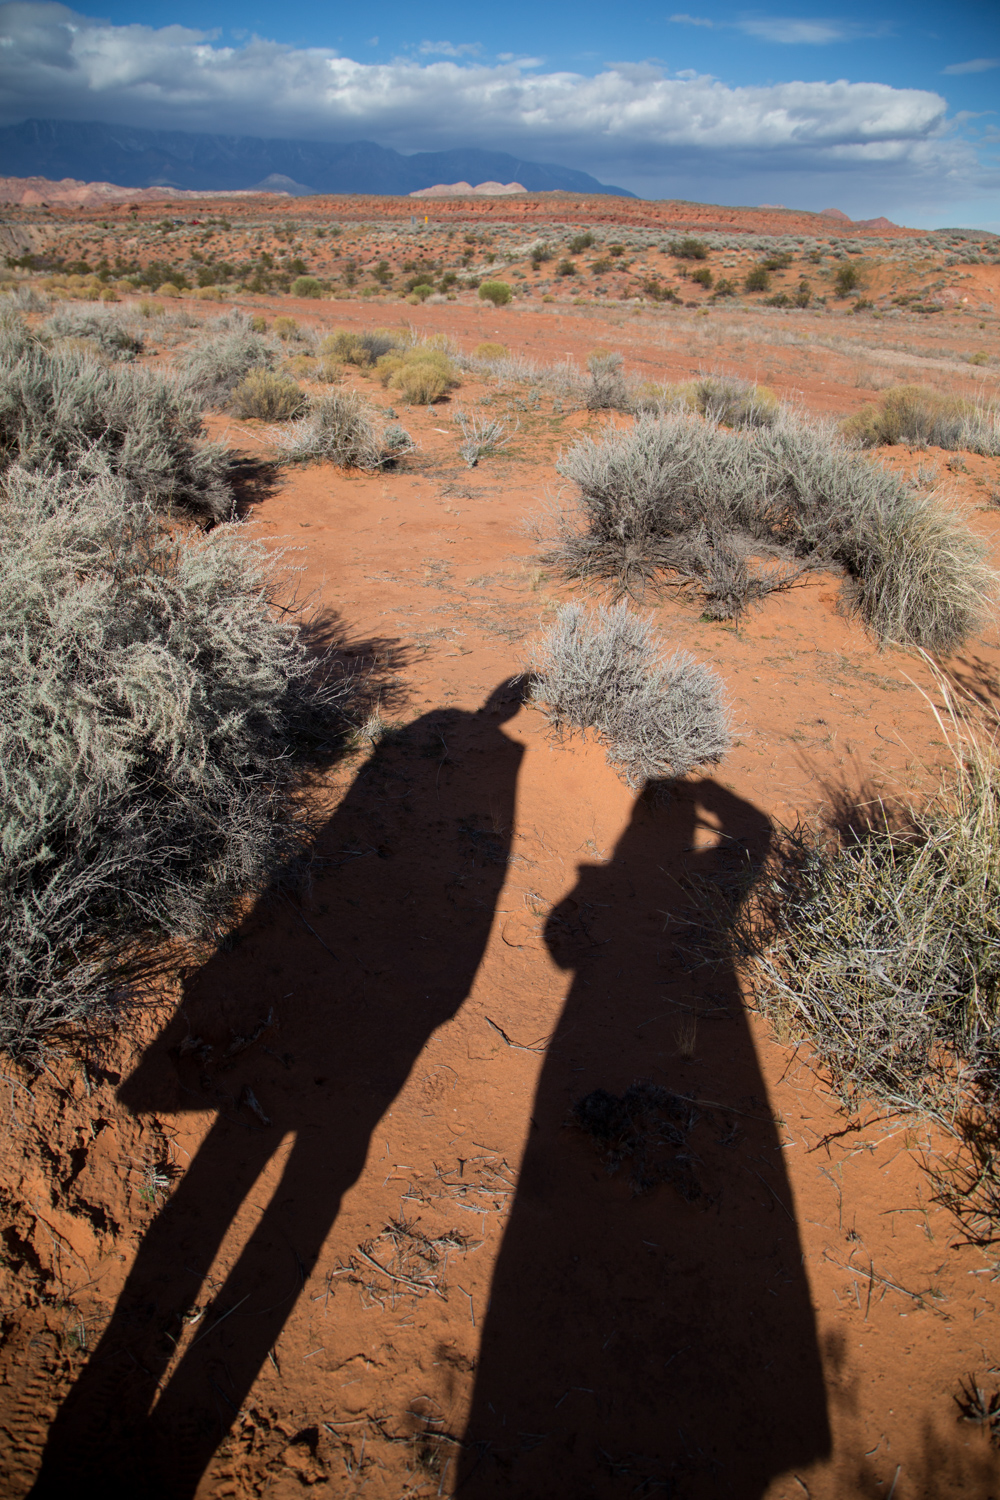 Couples Adventure and Travel Blog